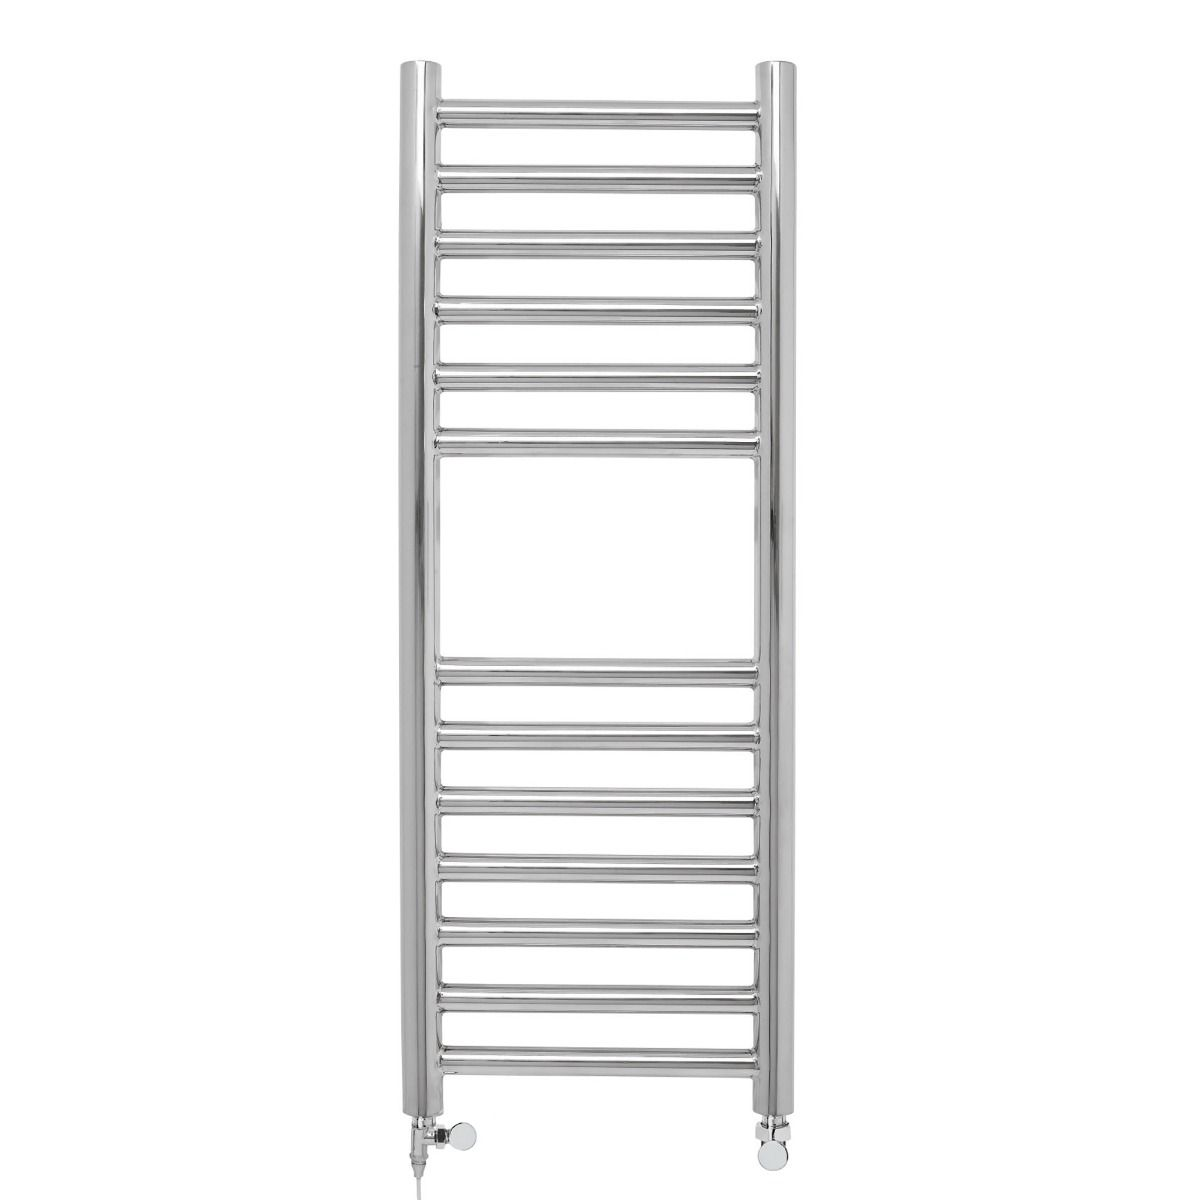 Stainless Steel Heated Towel Rail 80x30